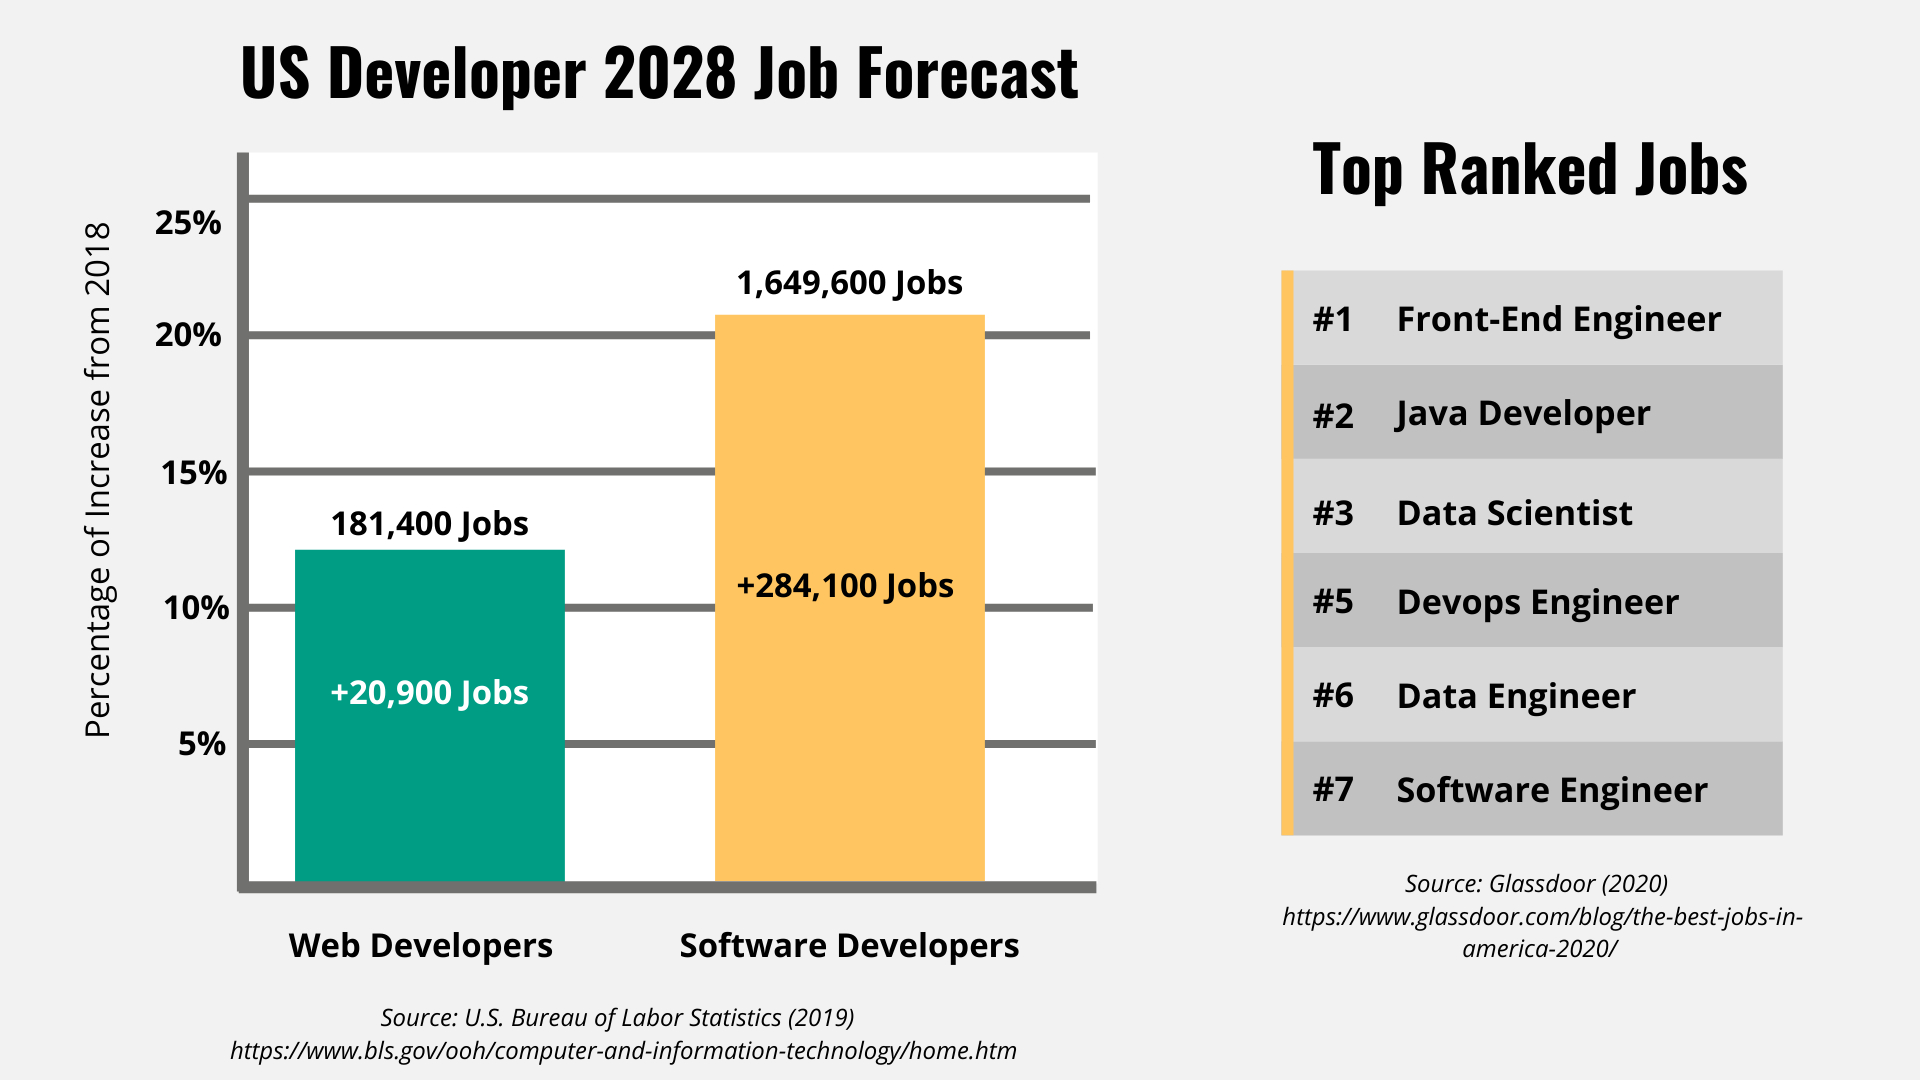 Develop Job forecast and top ranked jobs